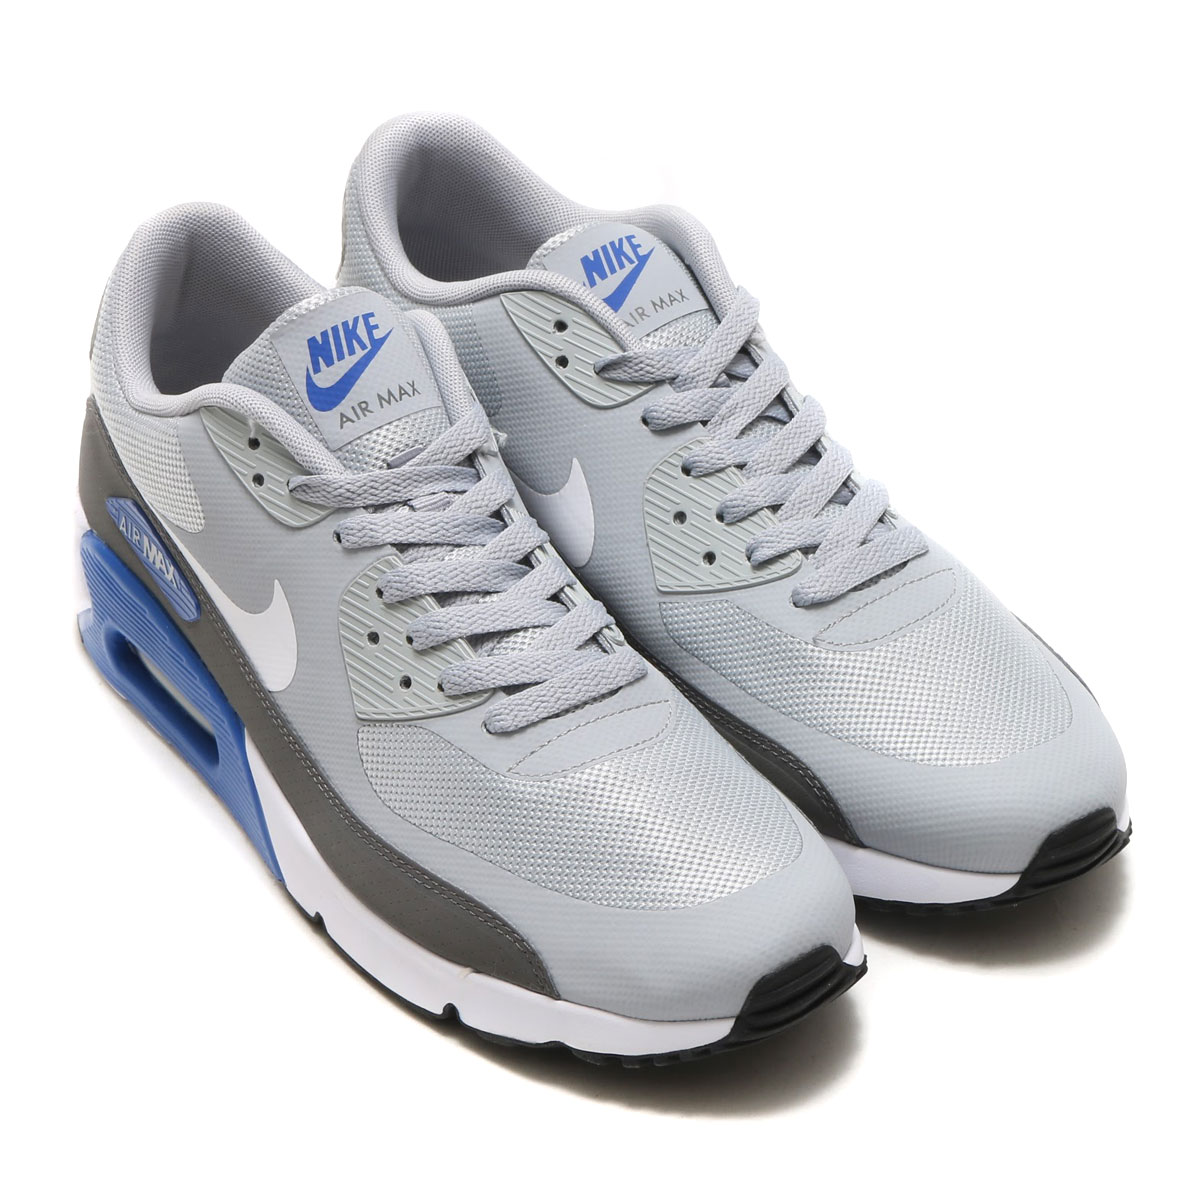 more photos b4fb8 4753e NIKE AIR MAX 90 ULTRA 2.0 ESSENTIAL (Kie Ney AMAX 90 ultra 2.0 essential)  ...